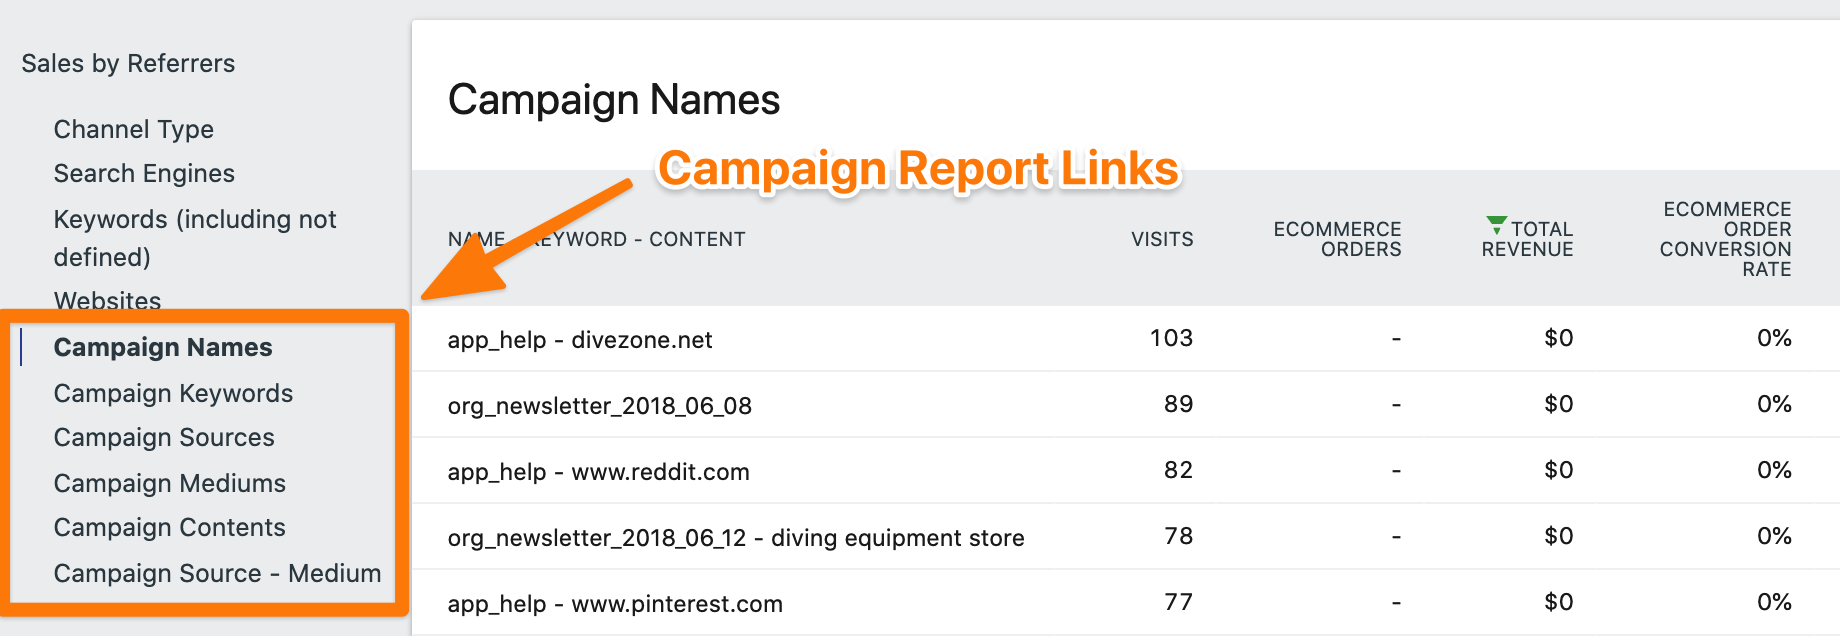 Campaign Sales Report Links